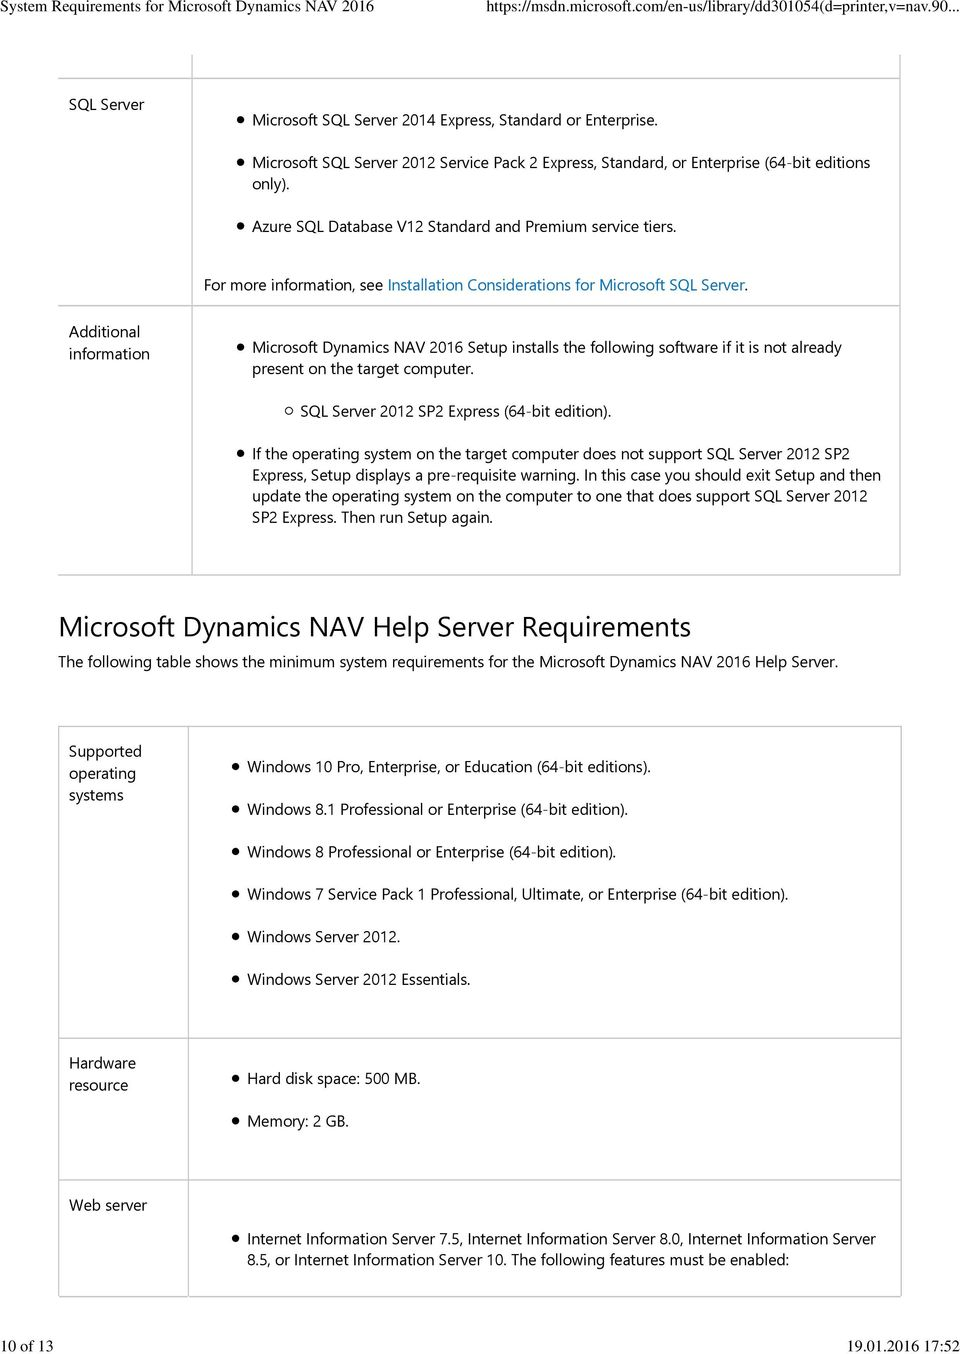 information Microsoft Dynamics NAV 2016 Setup installs the following software if it is not already present on the target computer. SQL Server 2012 SP2 Express (64-bit edition).